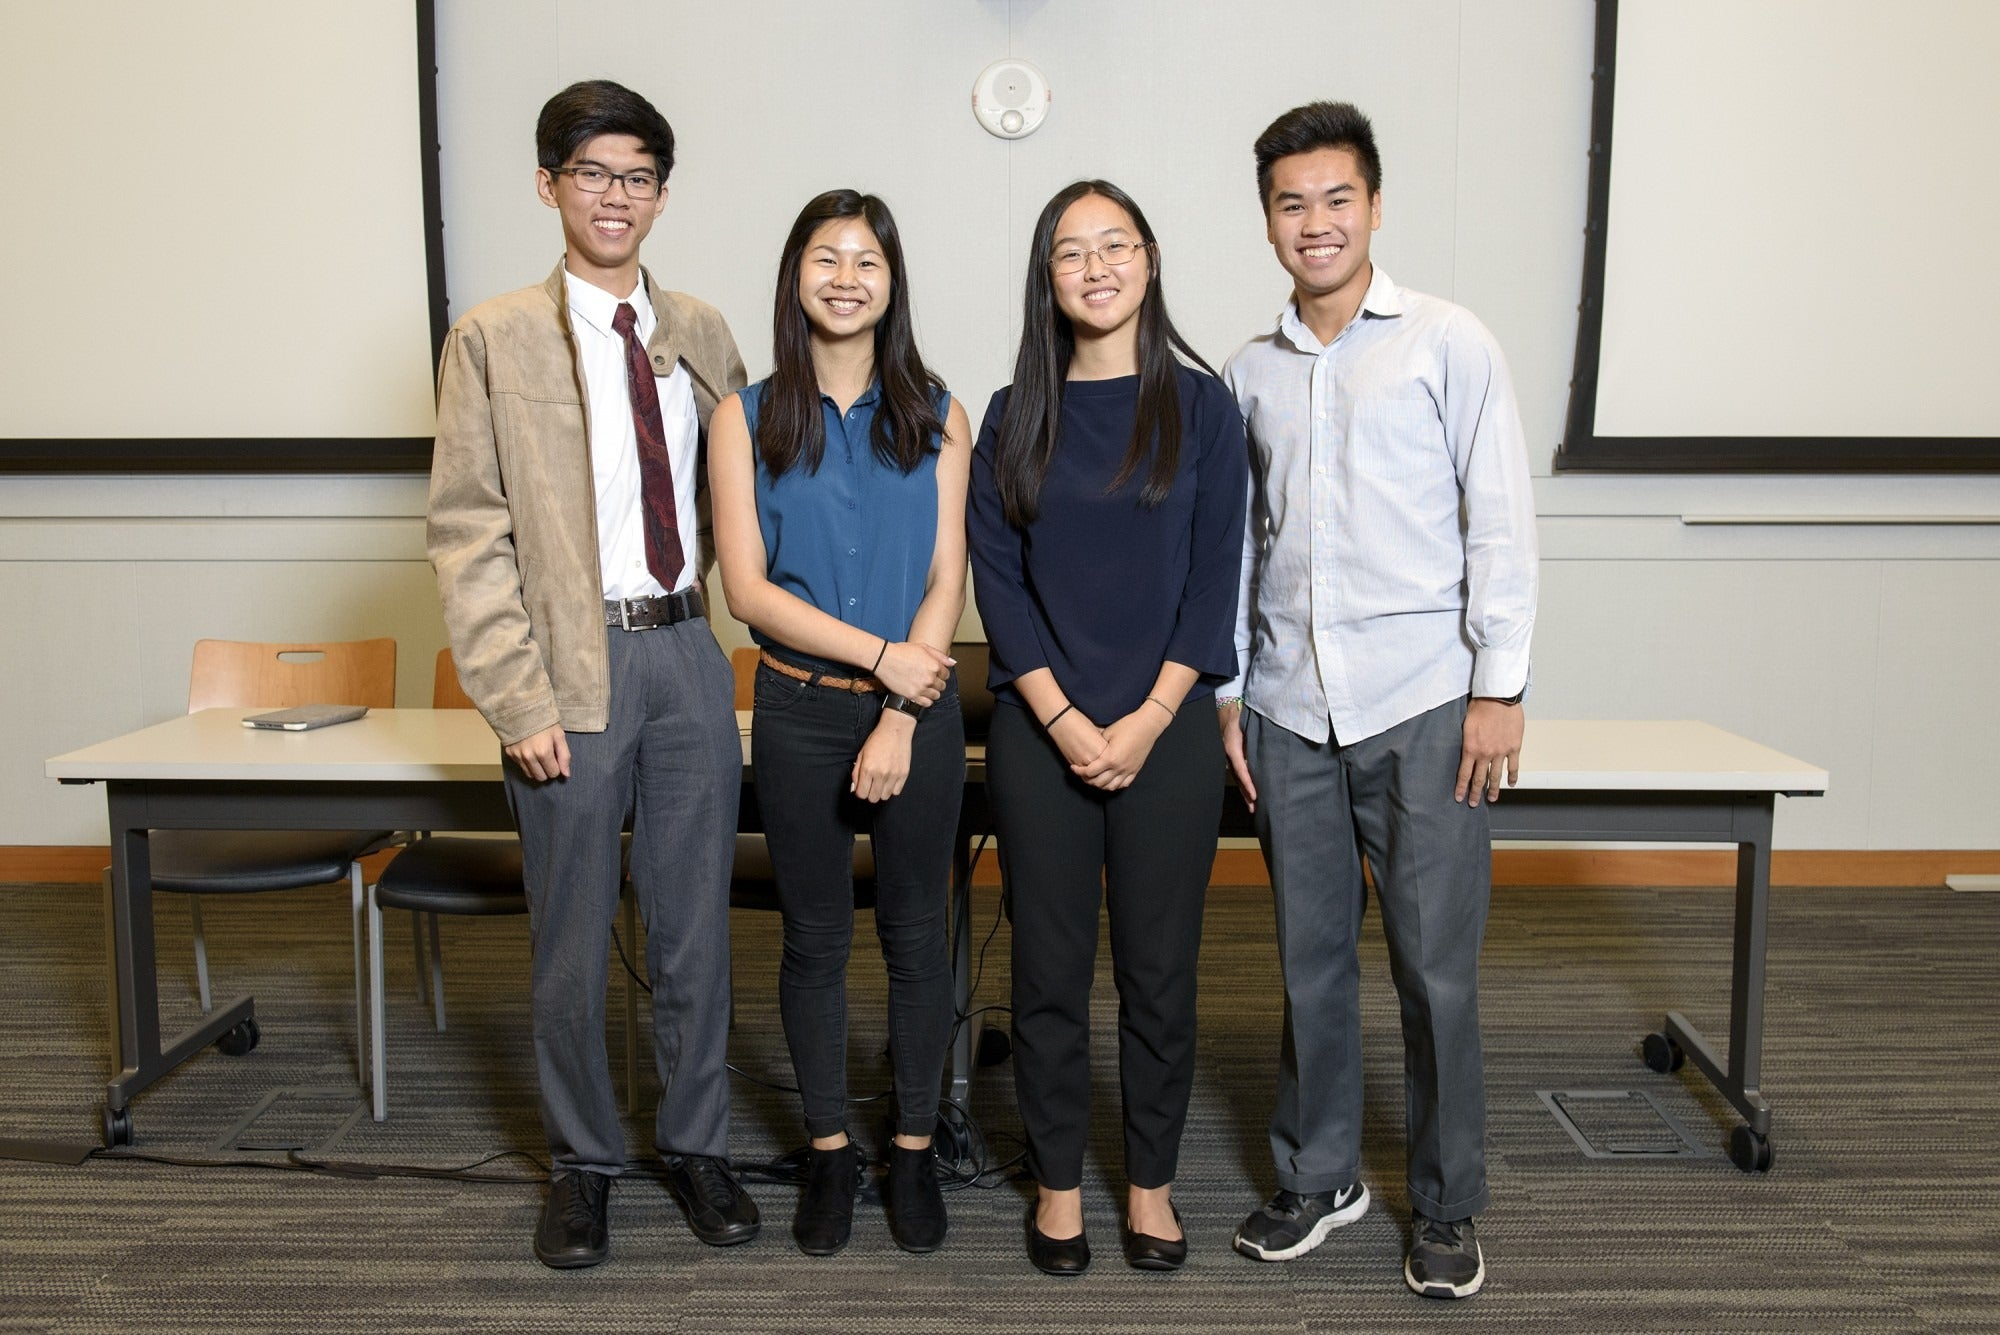 Interns from MTC's 2018 High School Internship